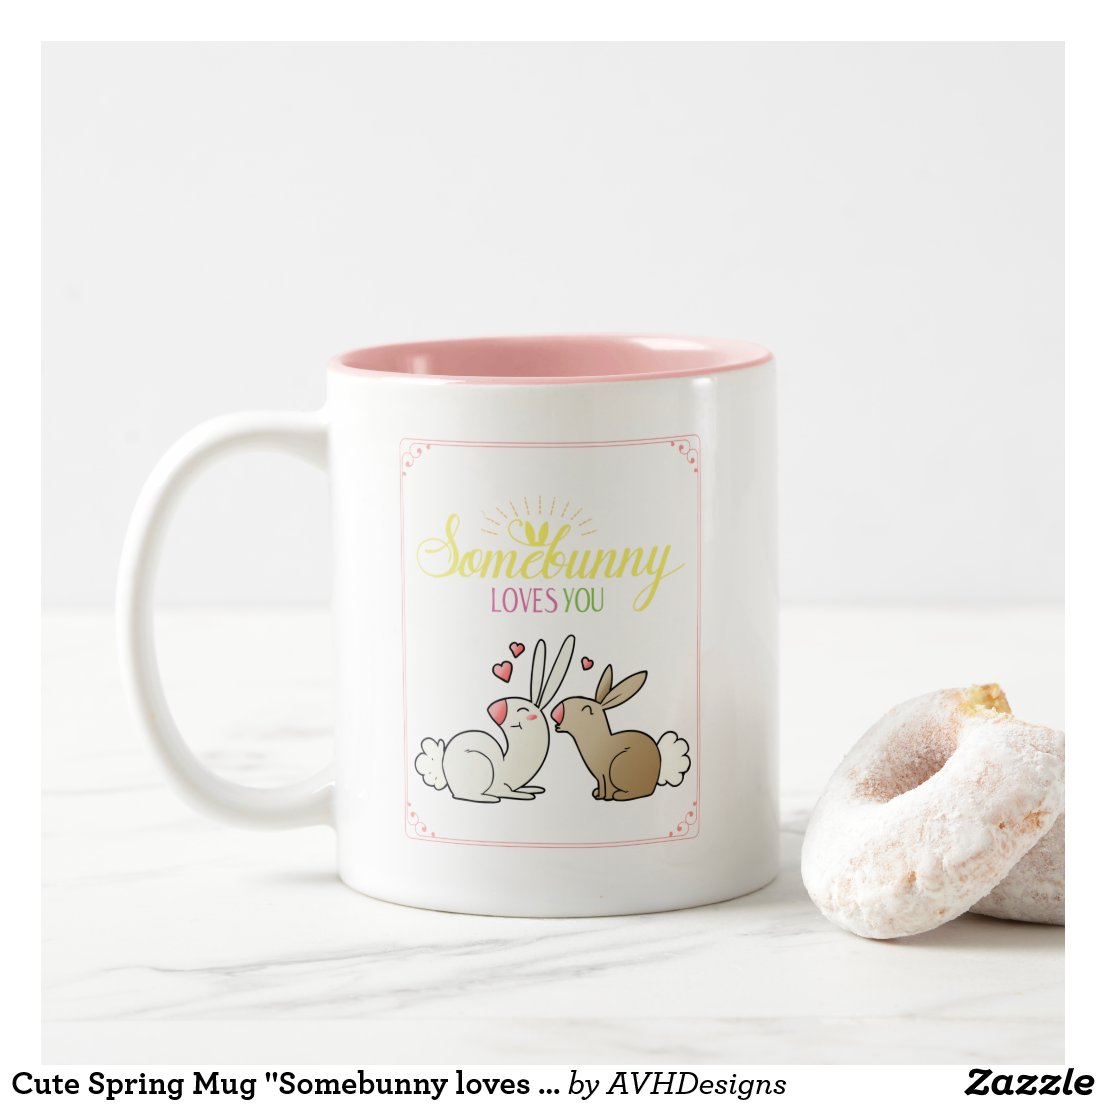 "Cute Spring Mug ""Somebunny loves you"""